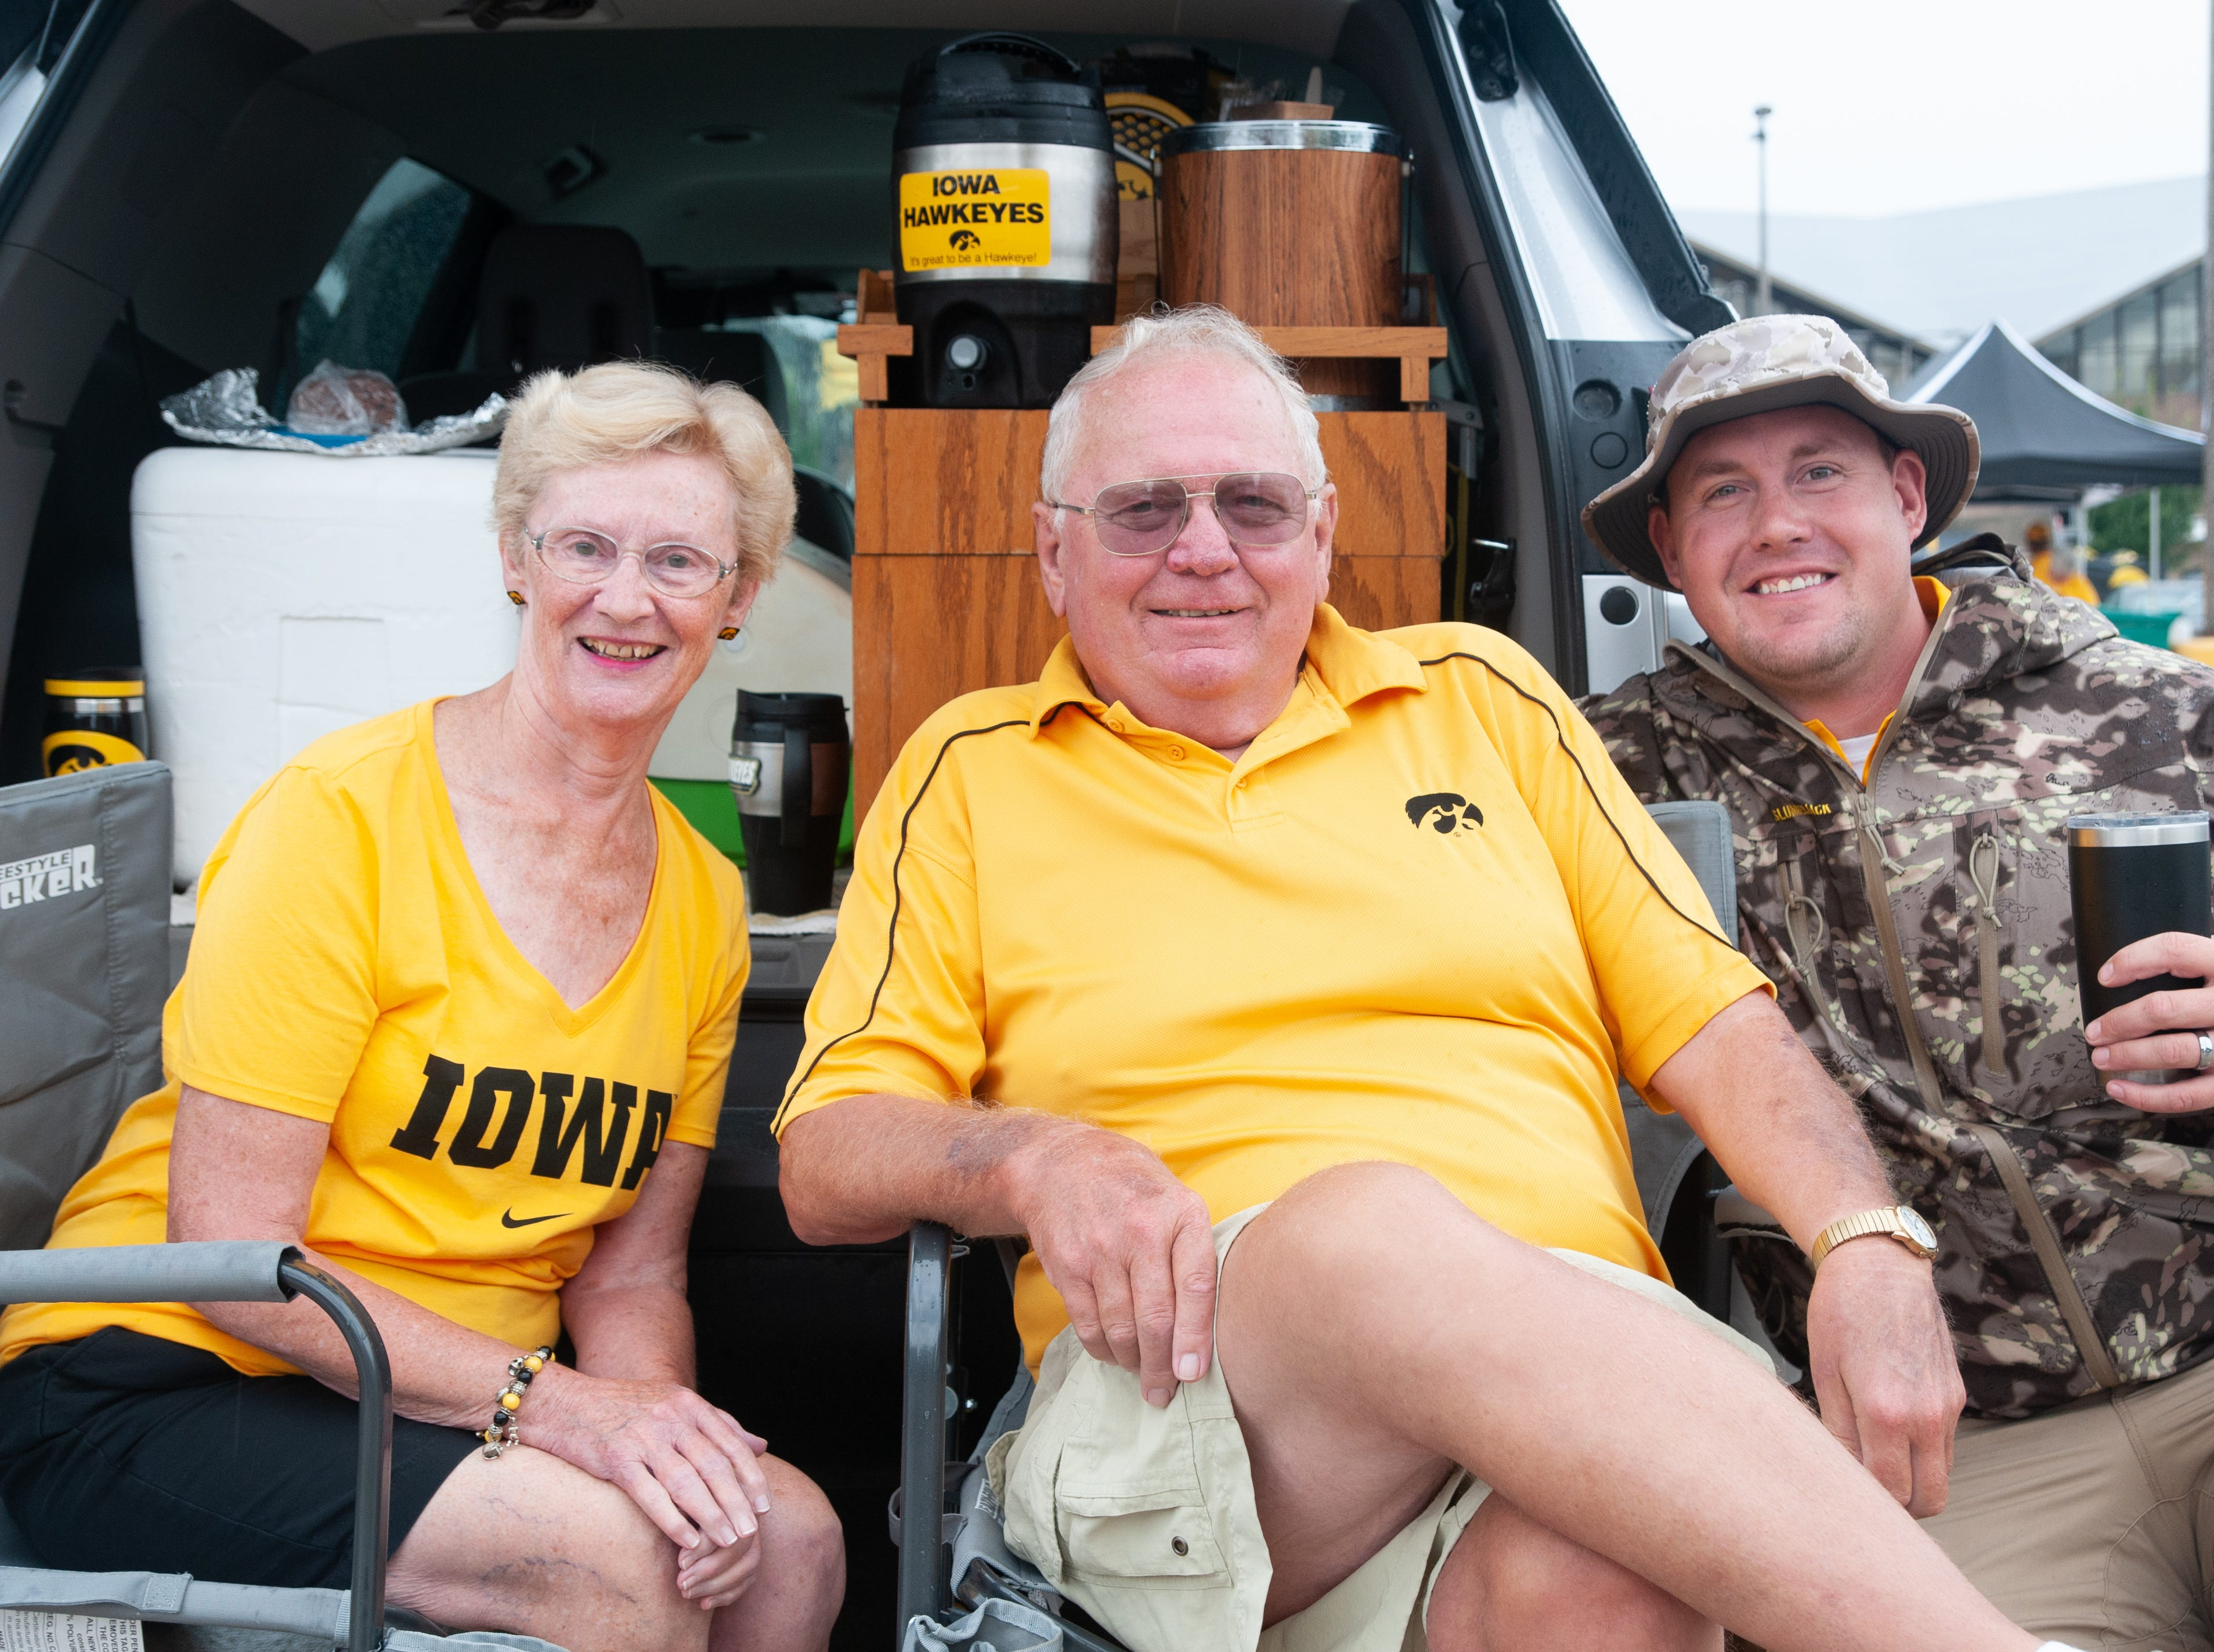 Donna and LeRoy Luepker, both 77, (left), and Jacob Koch, 31, of Mechanicsville and Lowden, Saturday, Sept. 1, 2018, while tailgating before the Iowa game against Northern Illinois in Iowa City.